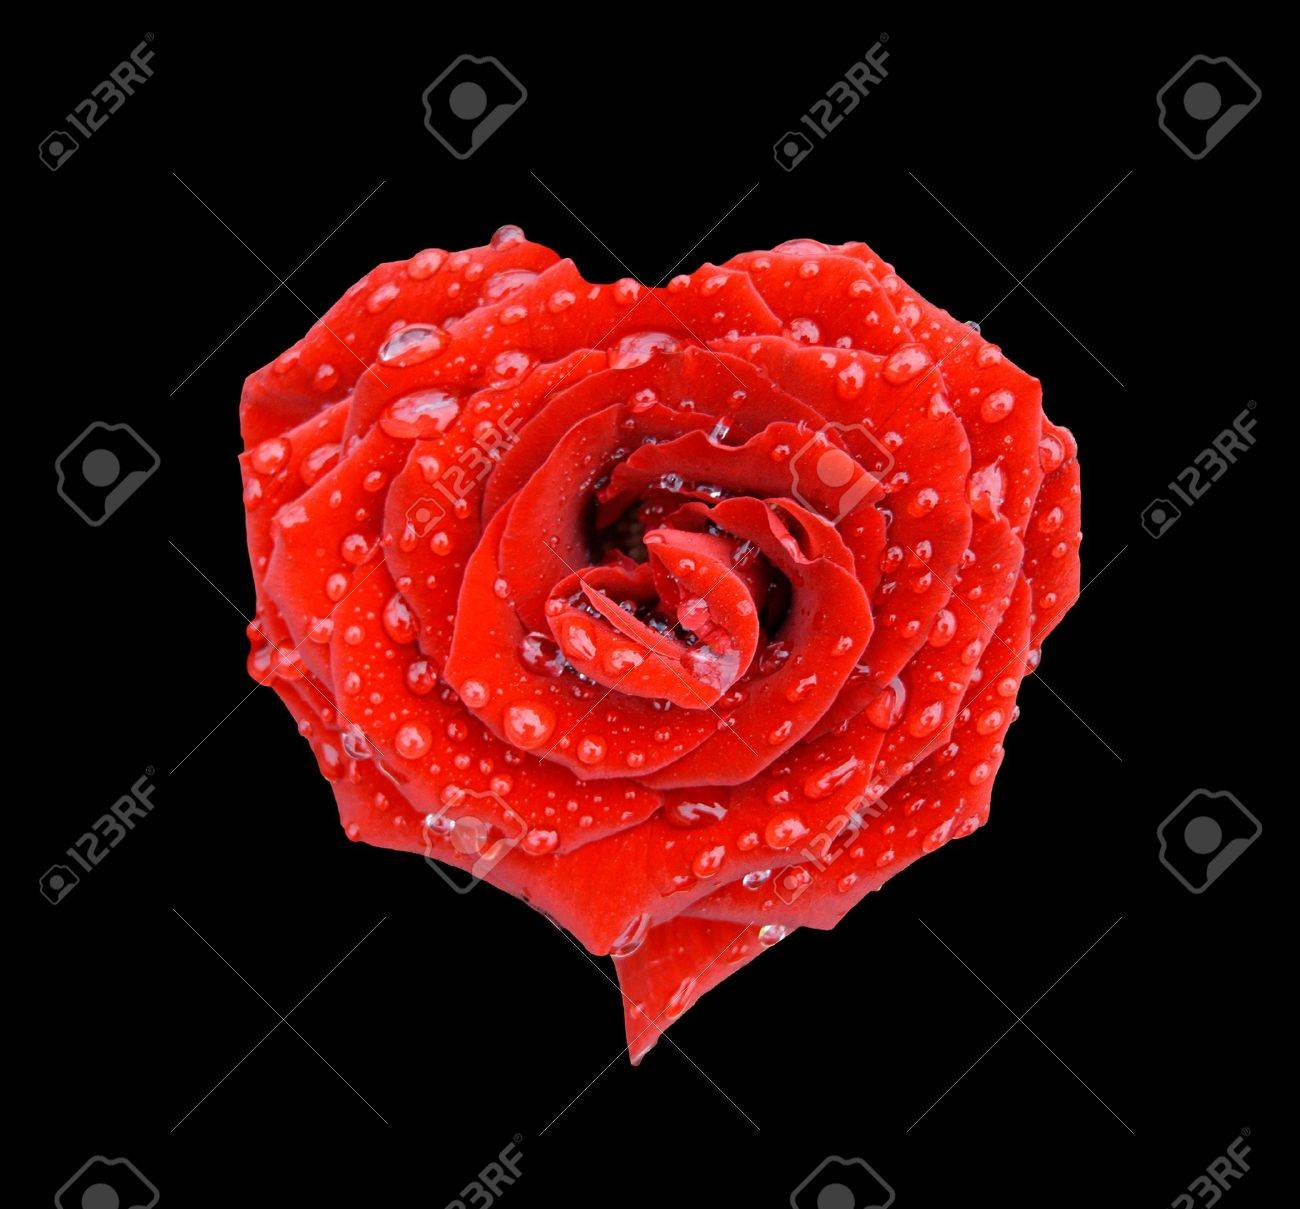 Rose Heart In Tears Over Black Stock Photo Picture And Royalty Free